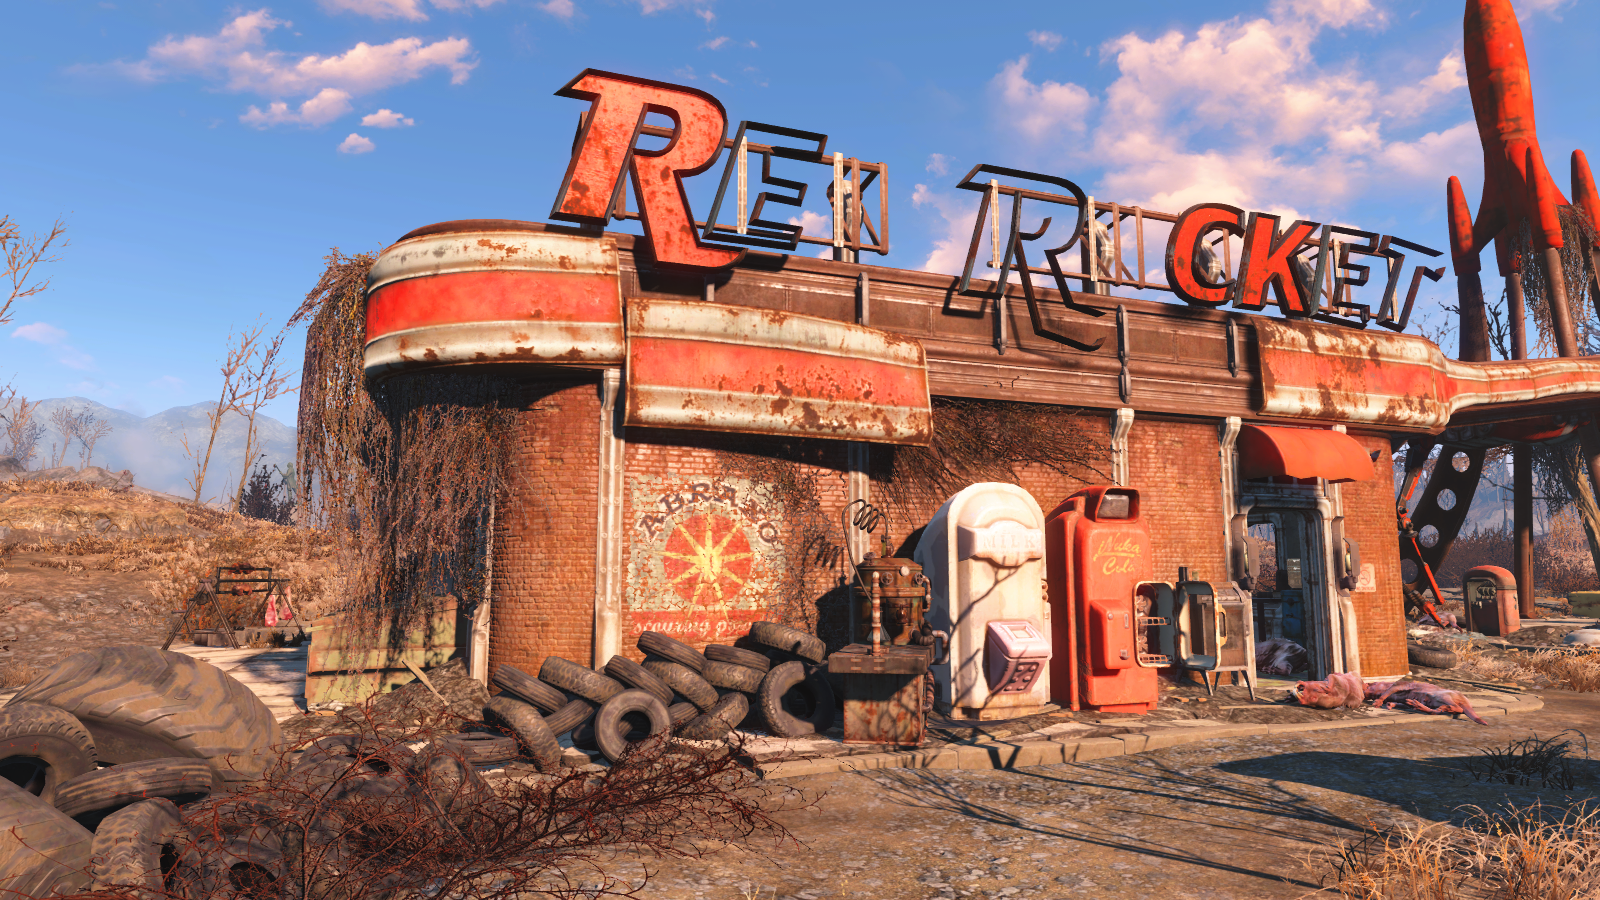 1366x368 Resolution Vs 1600x900: GeForce.com Fallout 4 NVIDIA Dynamic Super Resolution